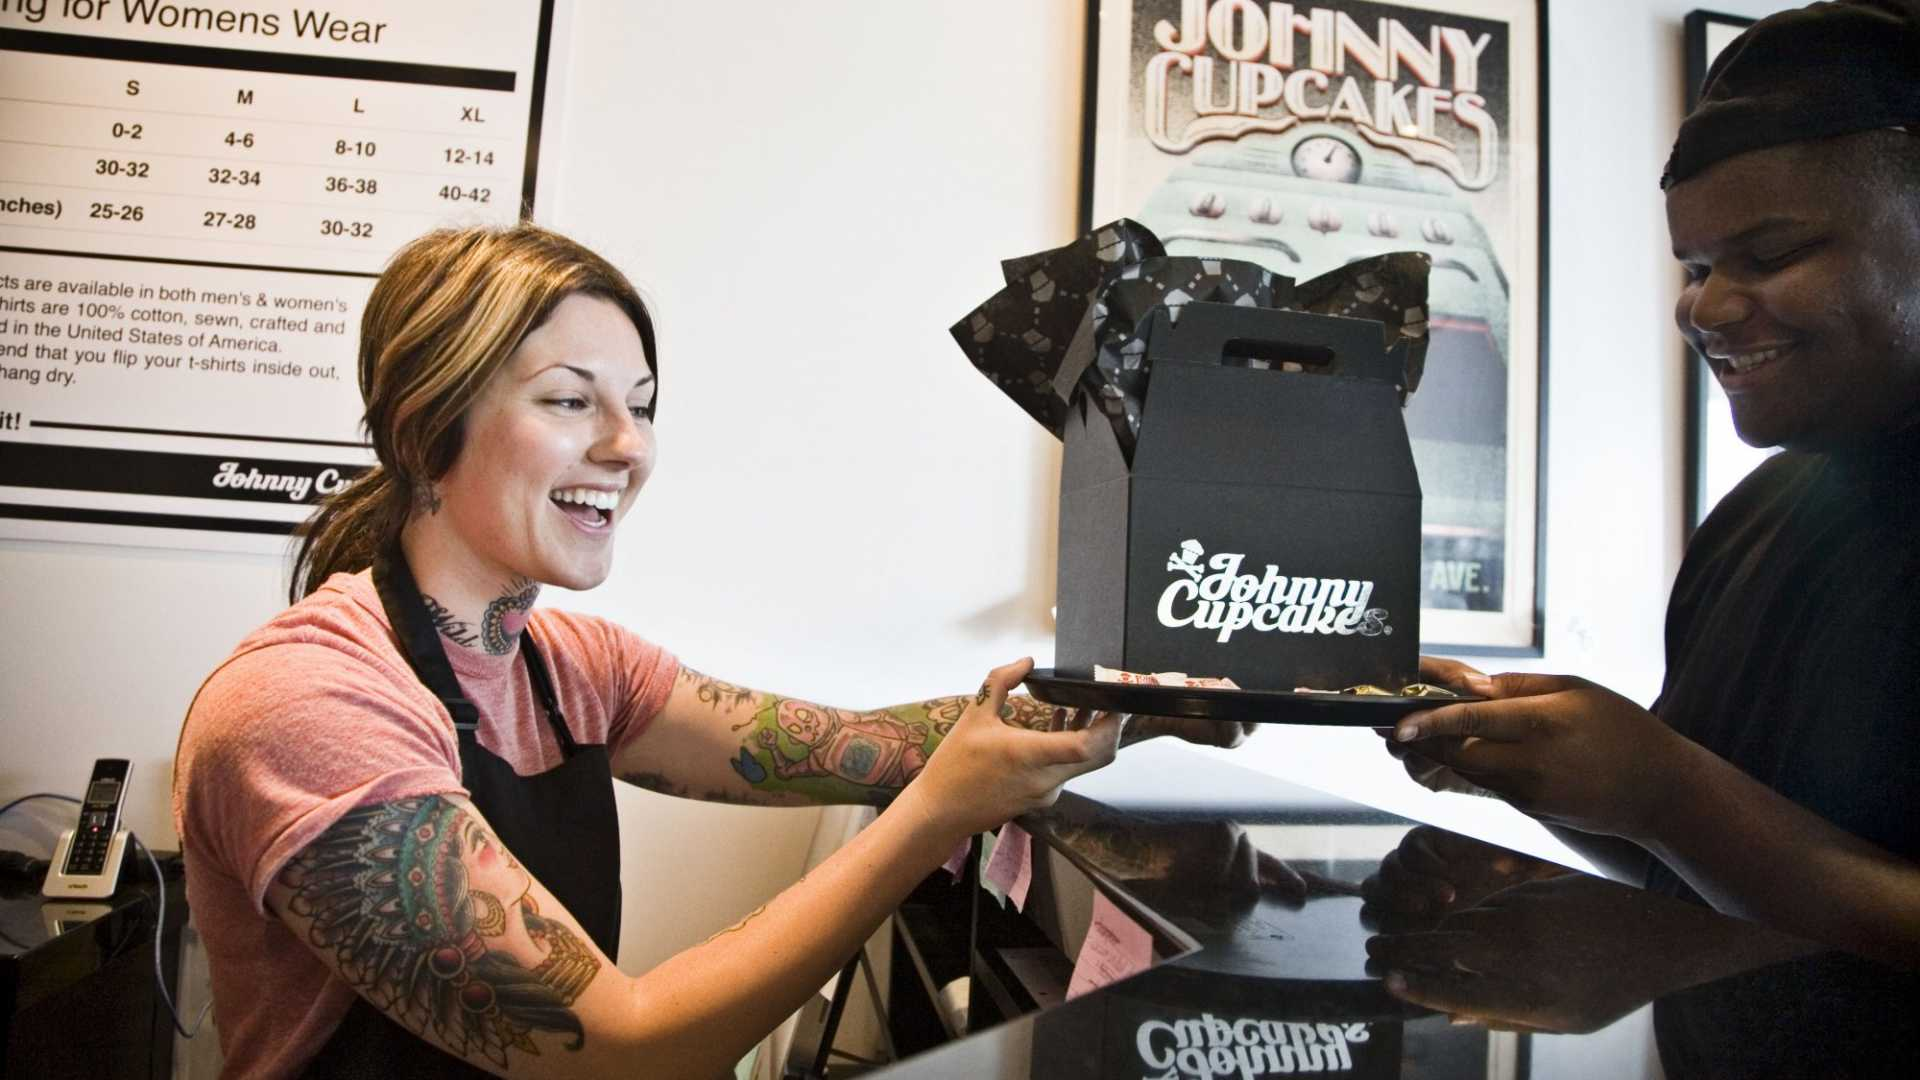 Johnny Cupcakes store.